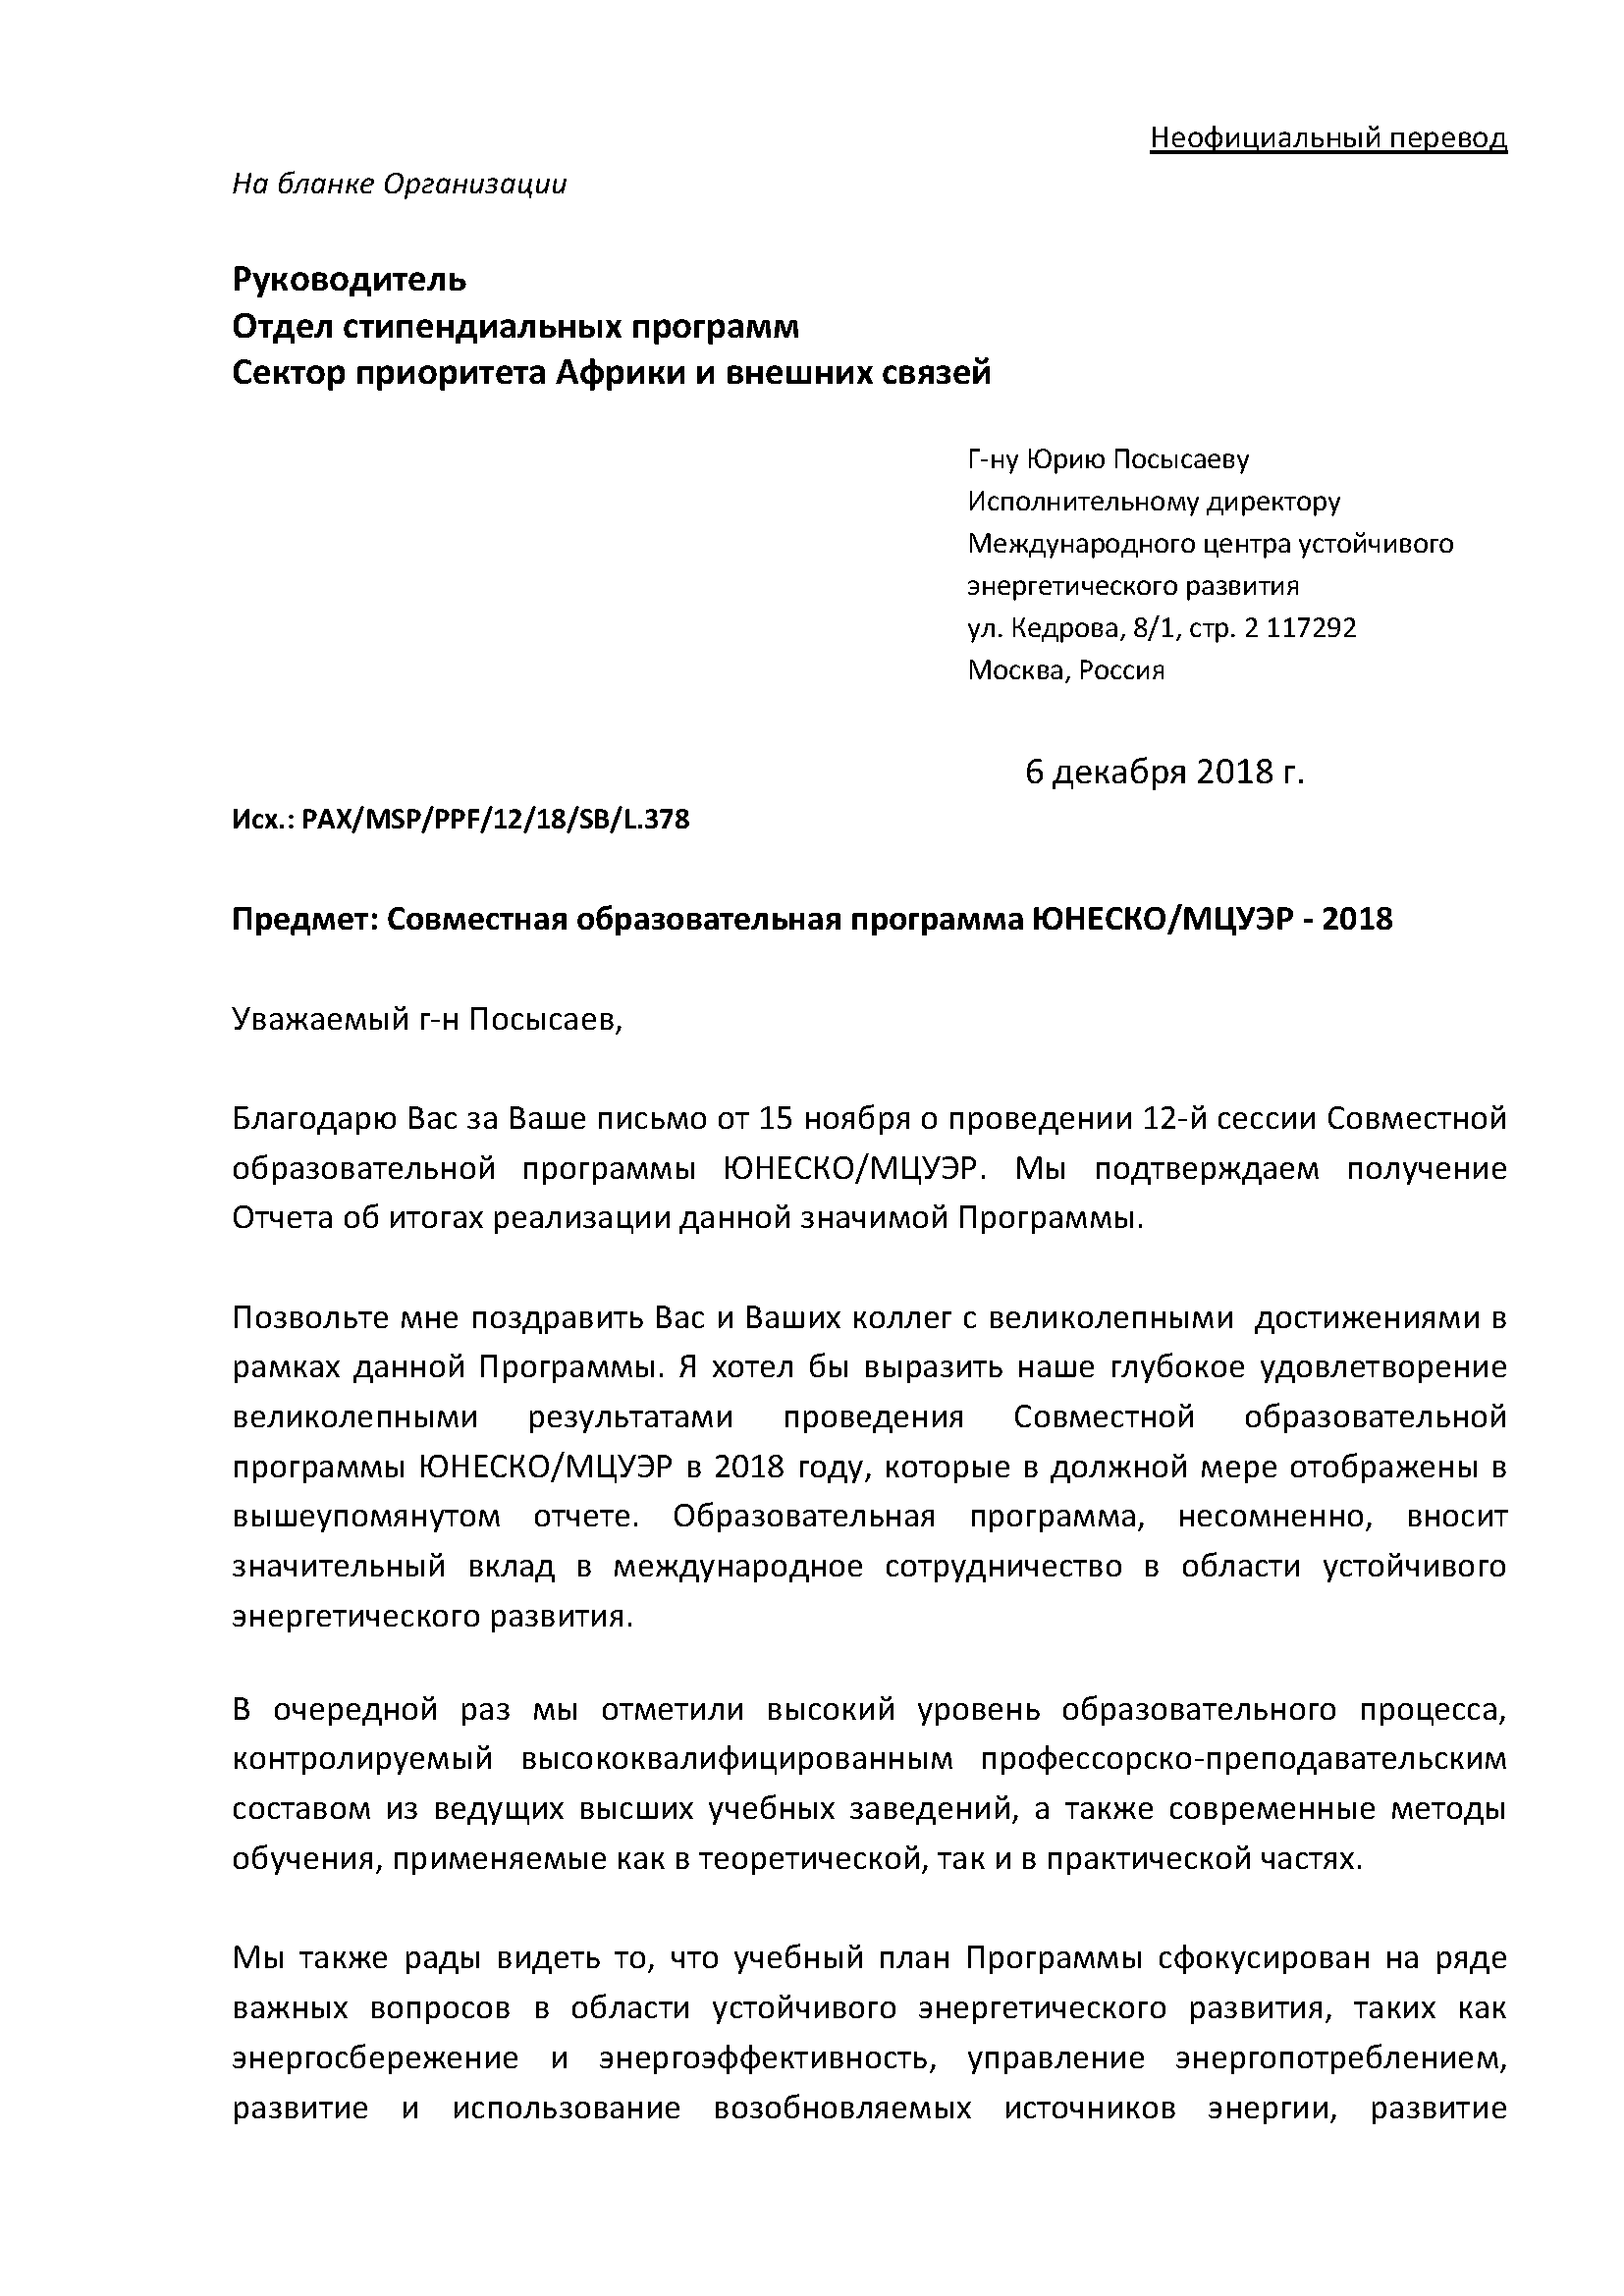 UNESCO ISEDC official letter ru